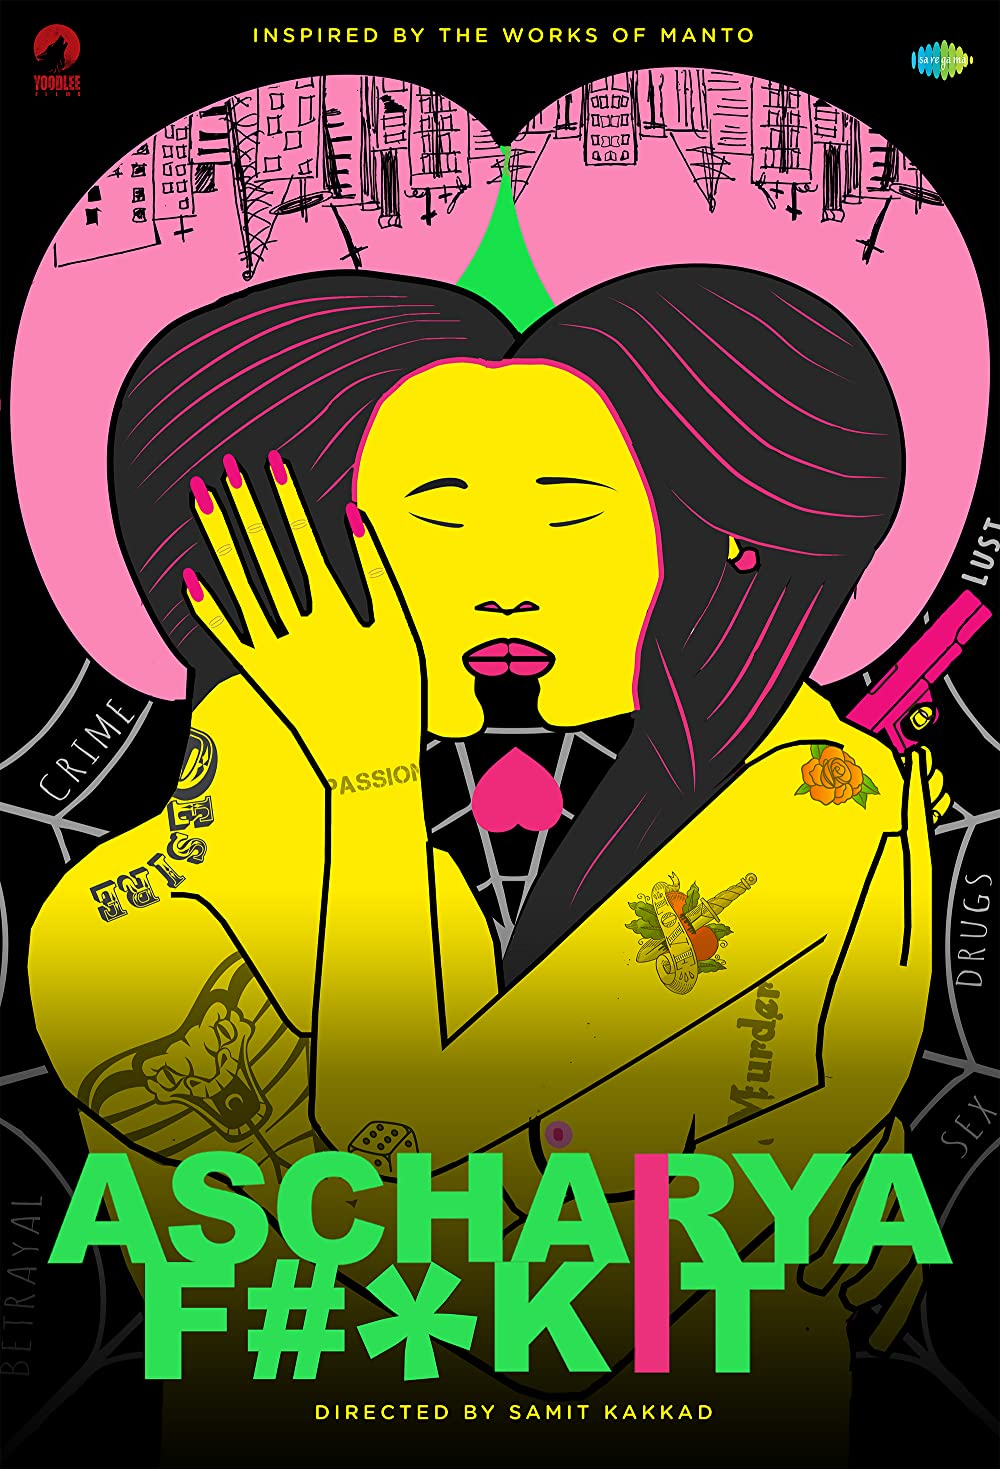 18+ Ascharya Fk It 2018 Hindi 1080p UNRATED HDRip ESubs 1.3GB Download